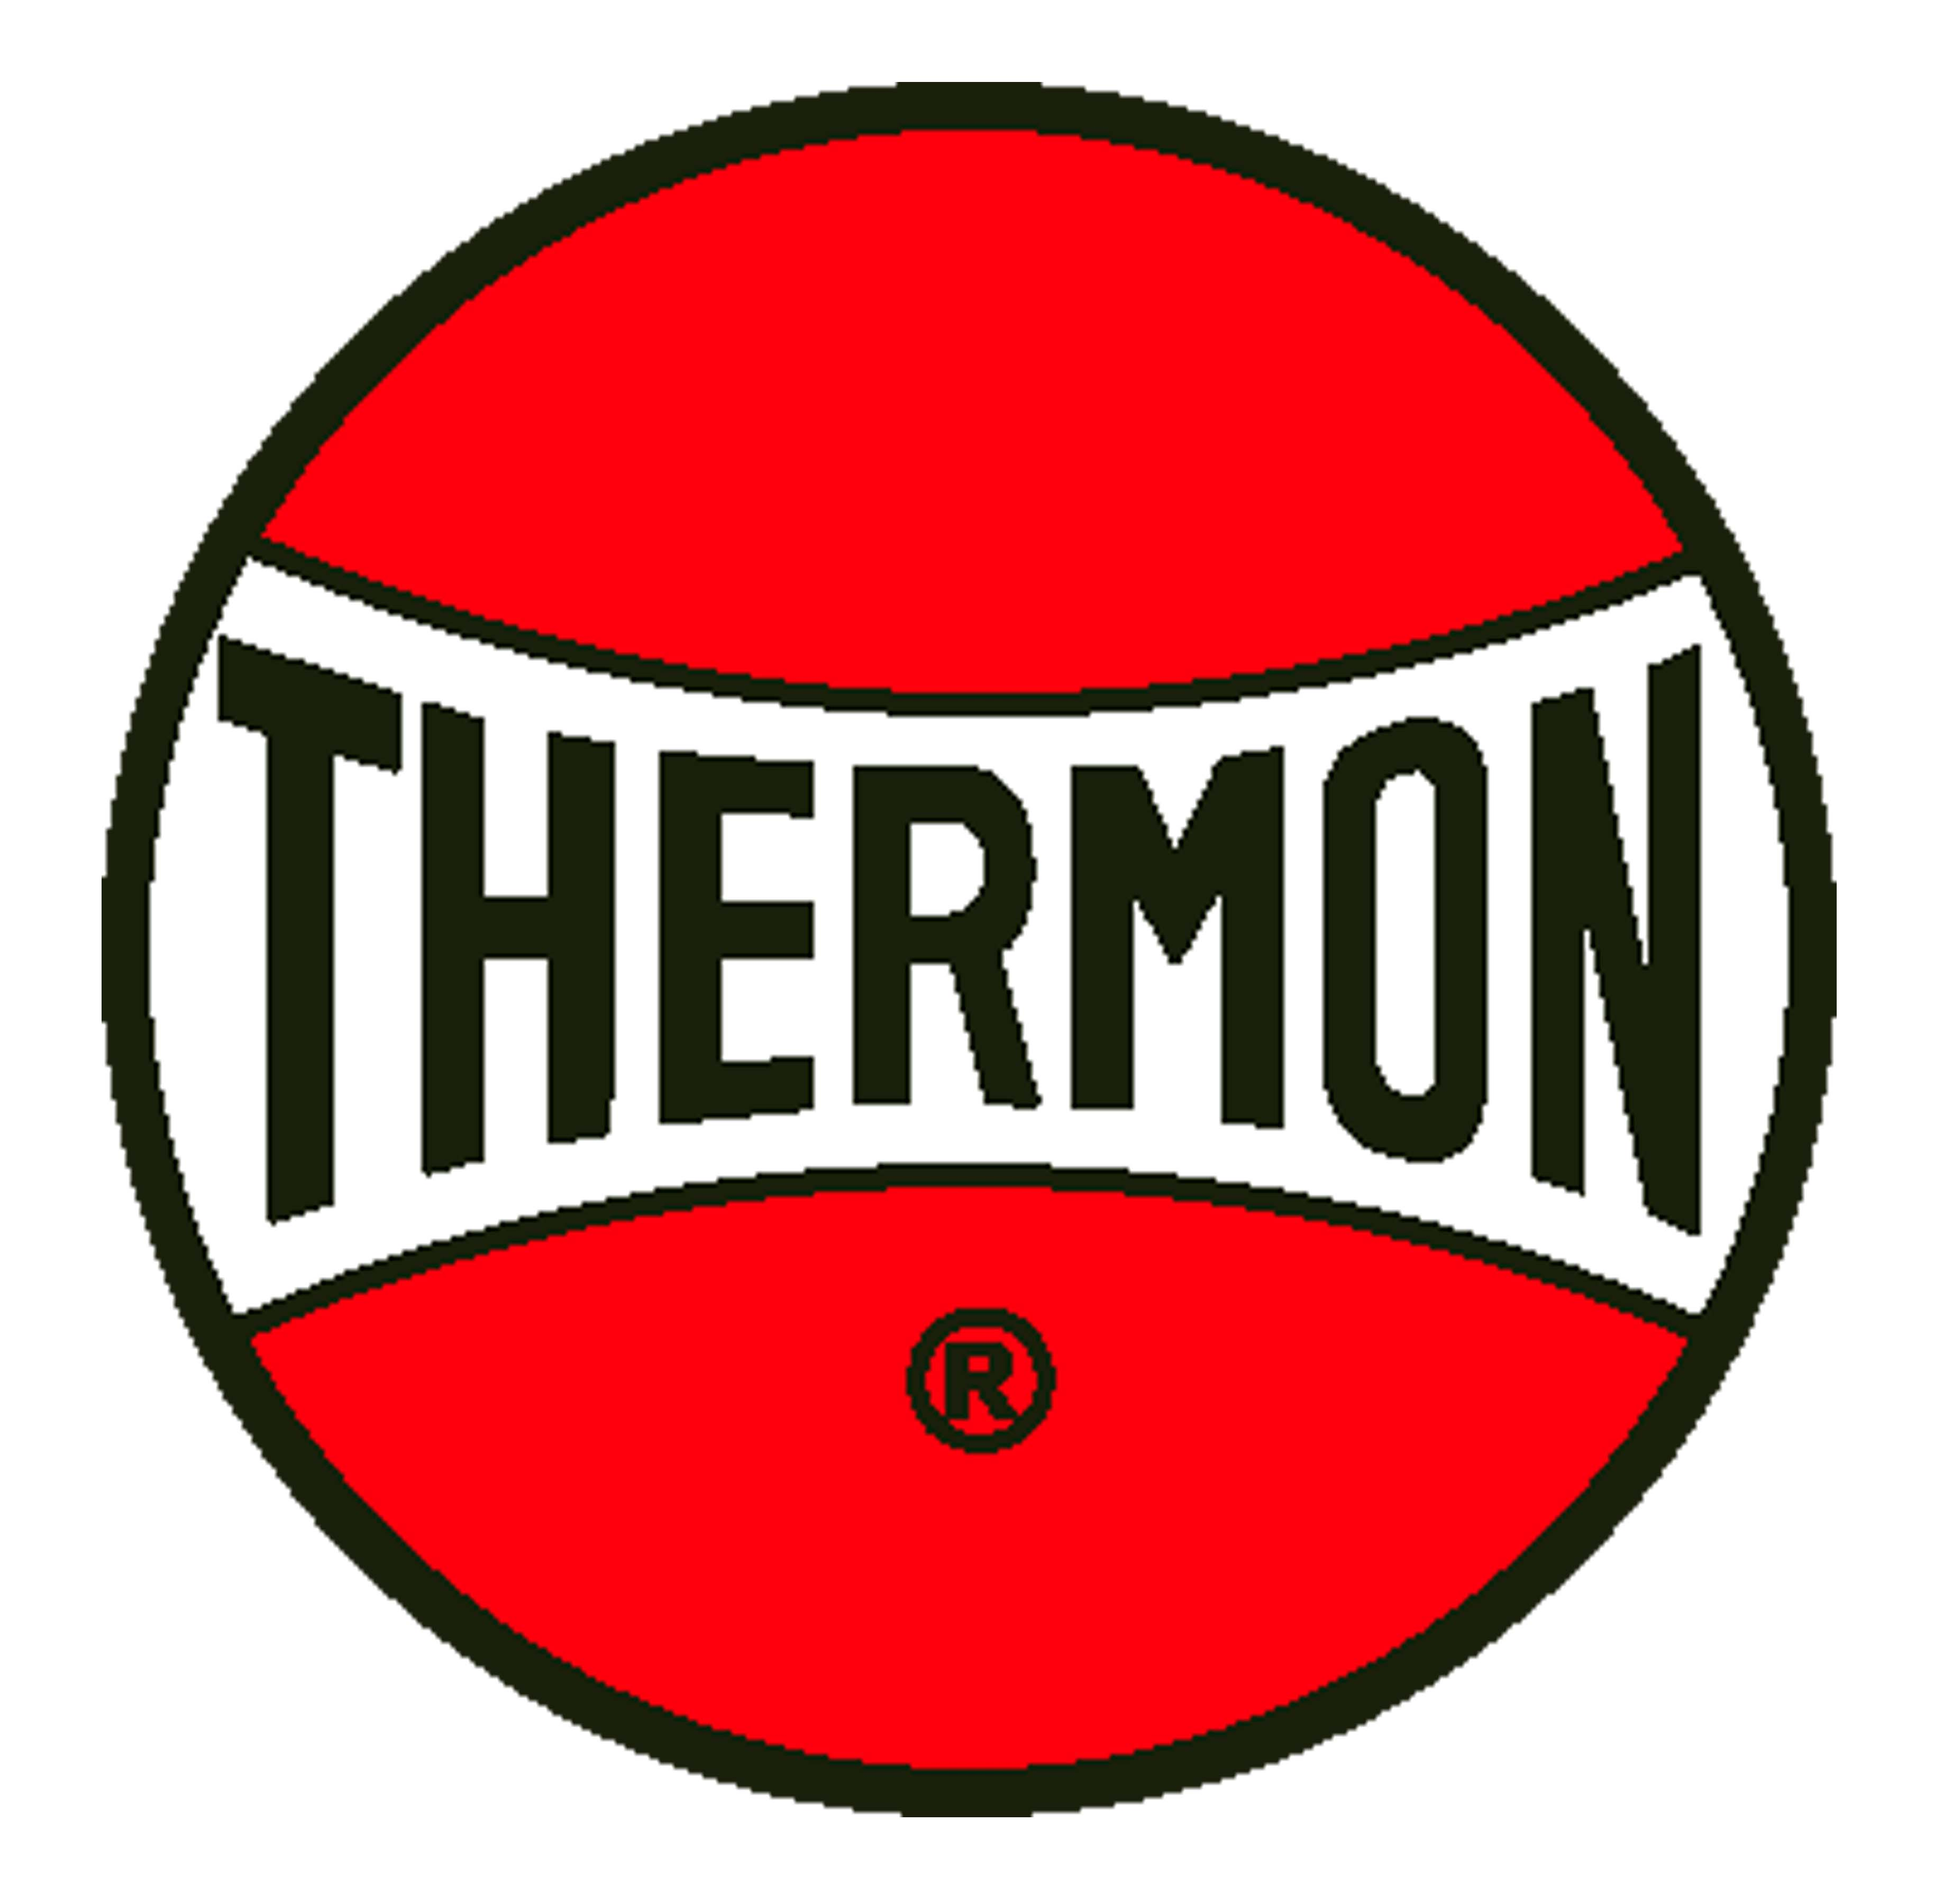 Thermon at Winn-Marion